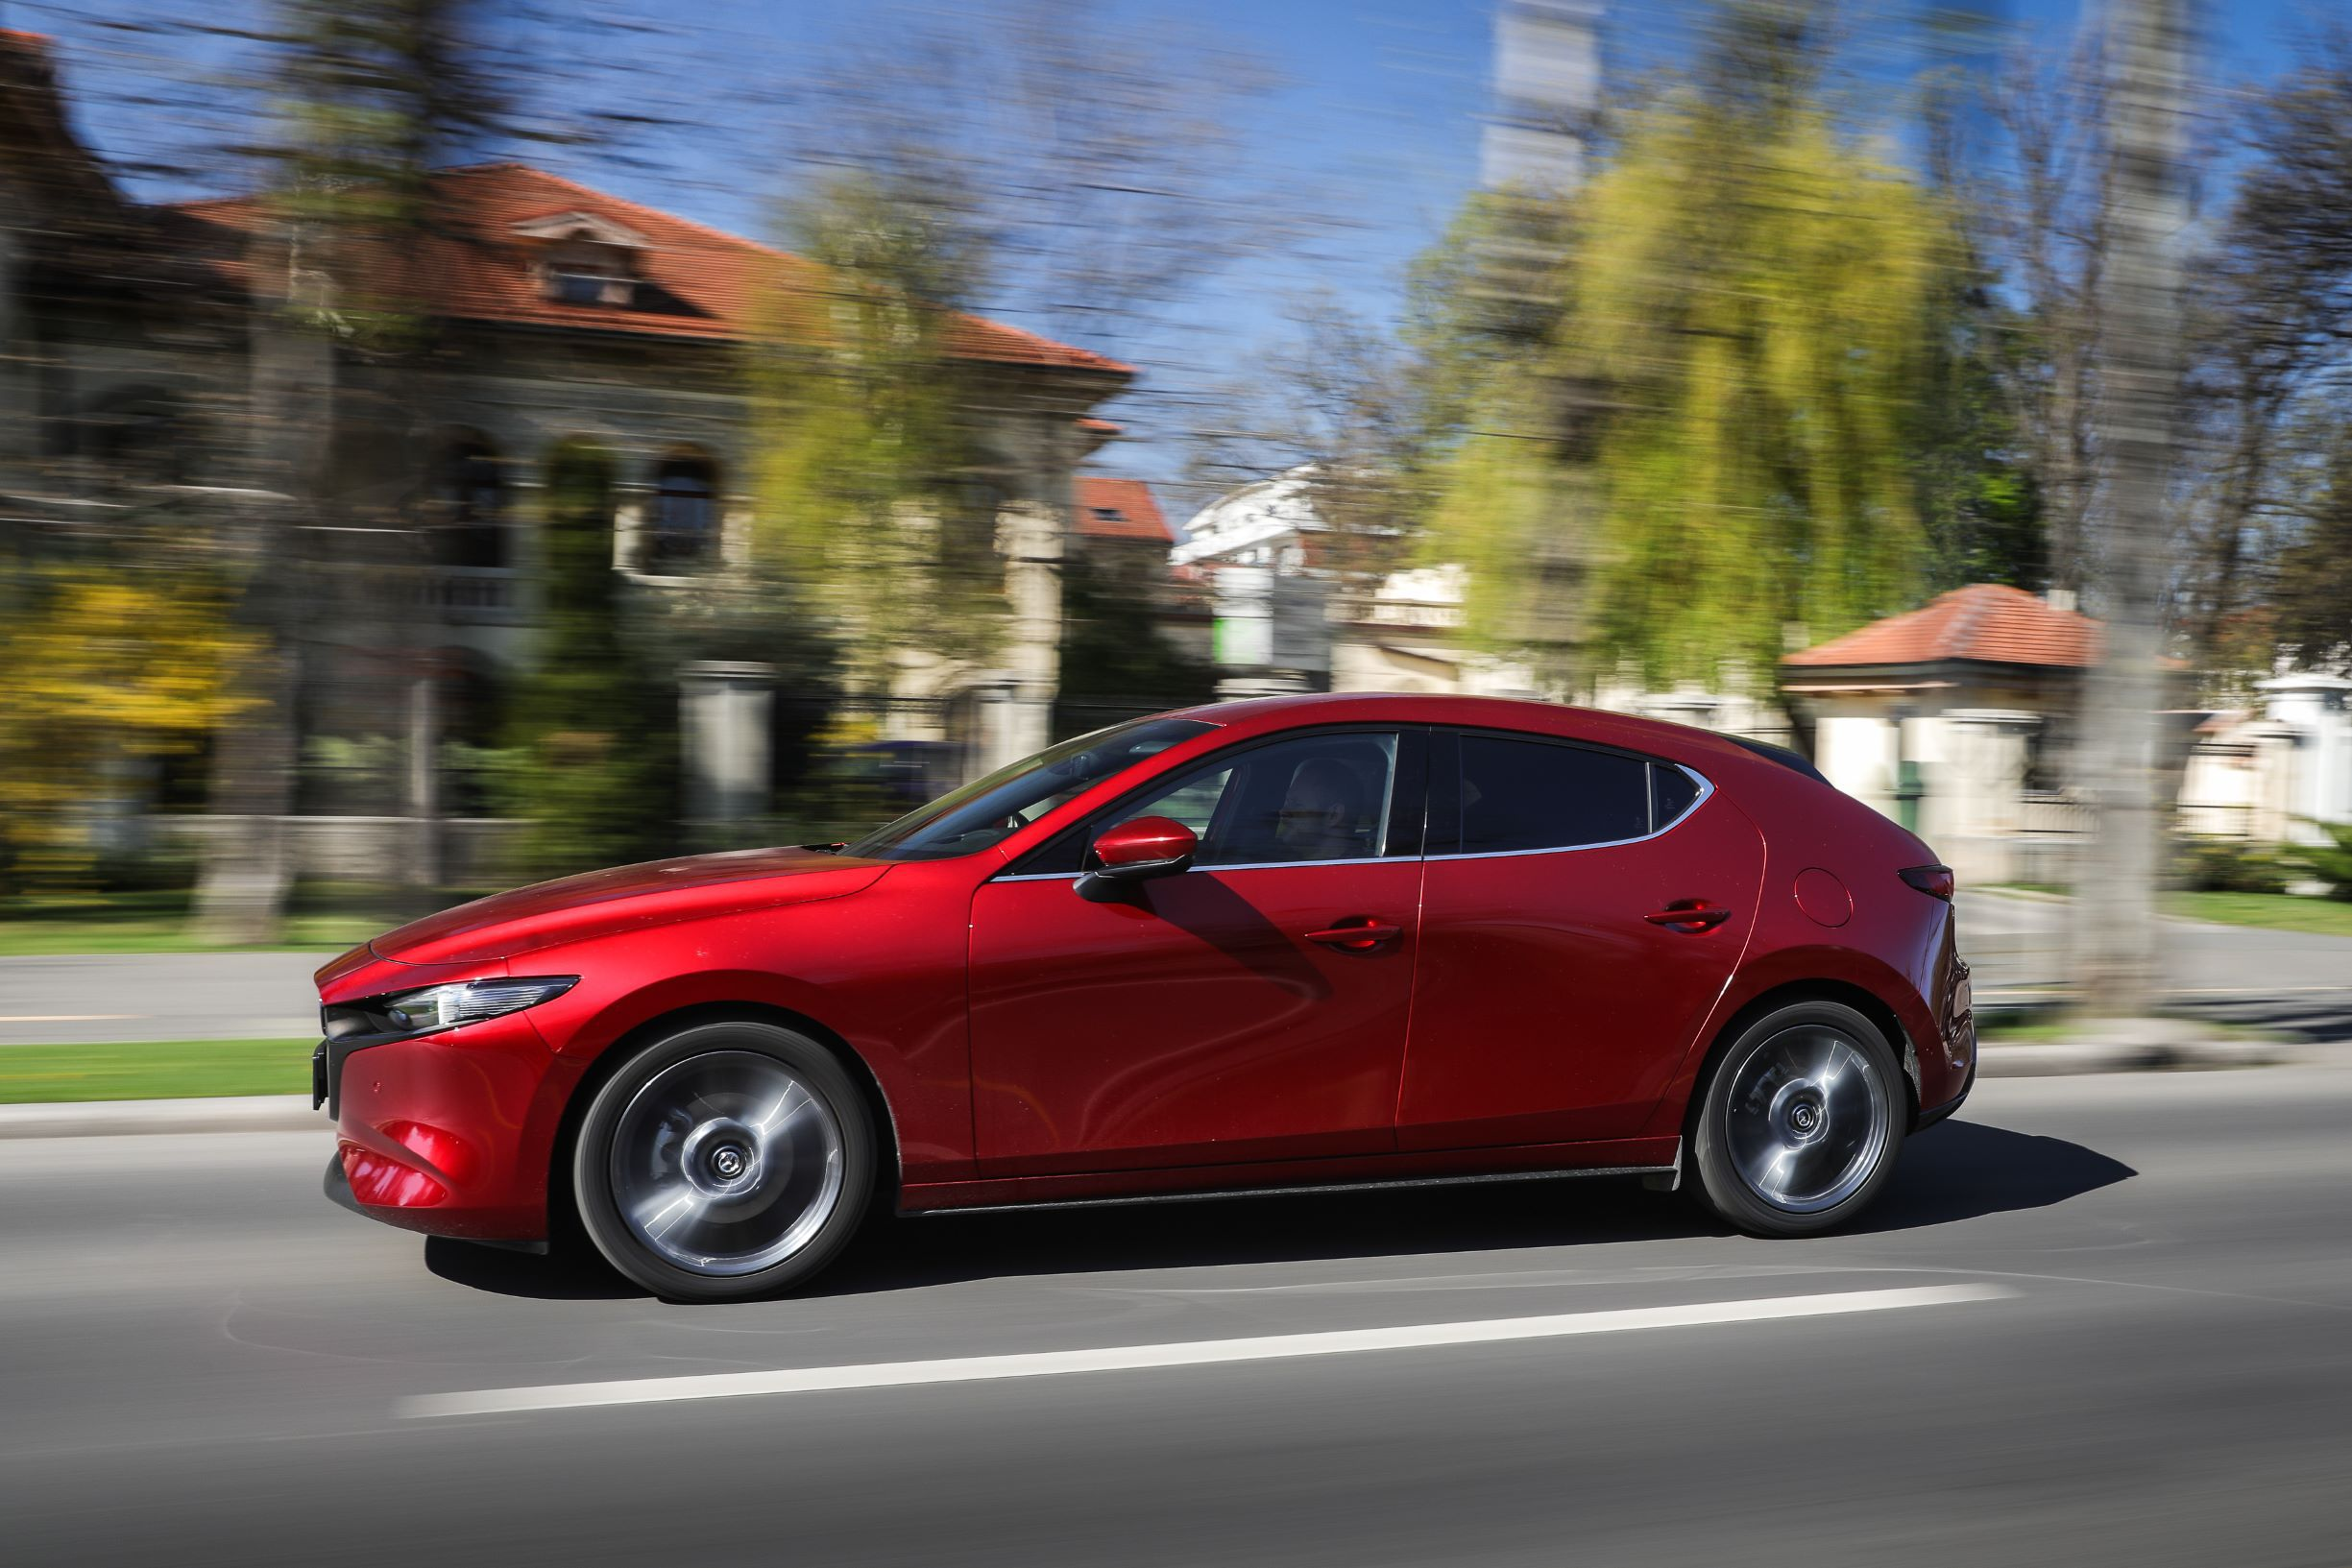 New Engine Cost >> The New Mazda3 With The Revolutionary Skyactiv X Engine Was Launched